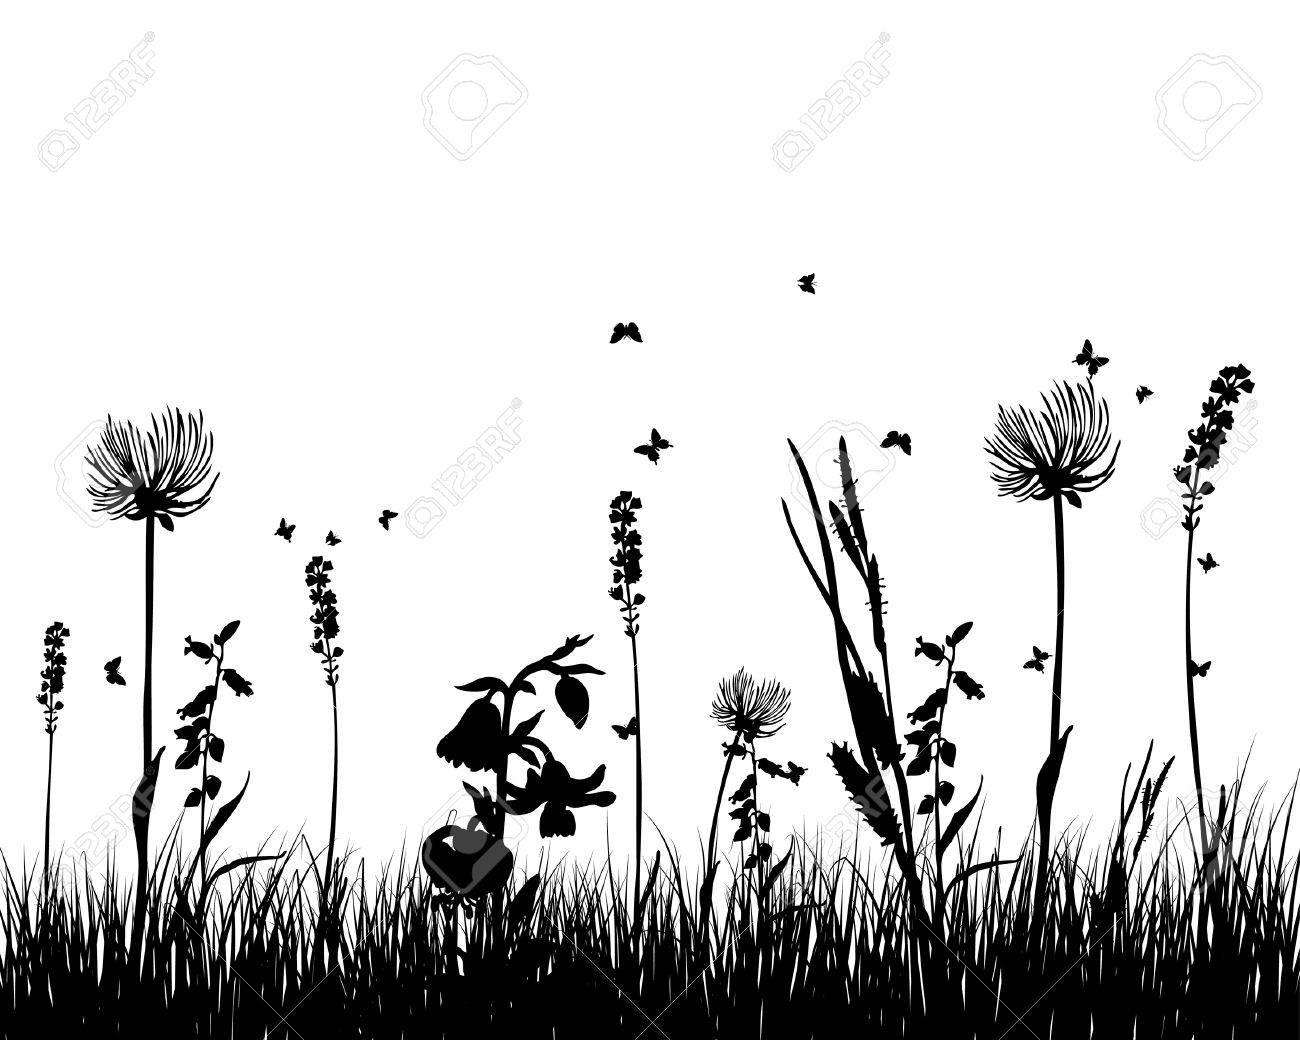 Vector grass silhouettes background for design use Stock Vector - 5124172